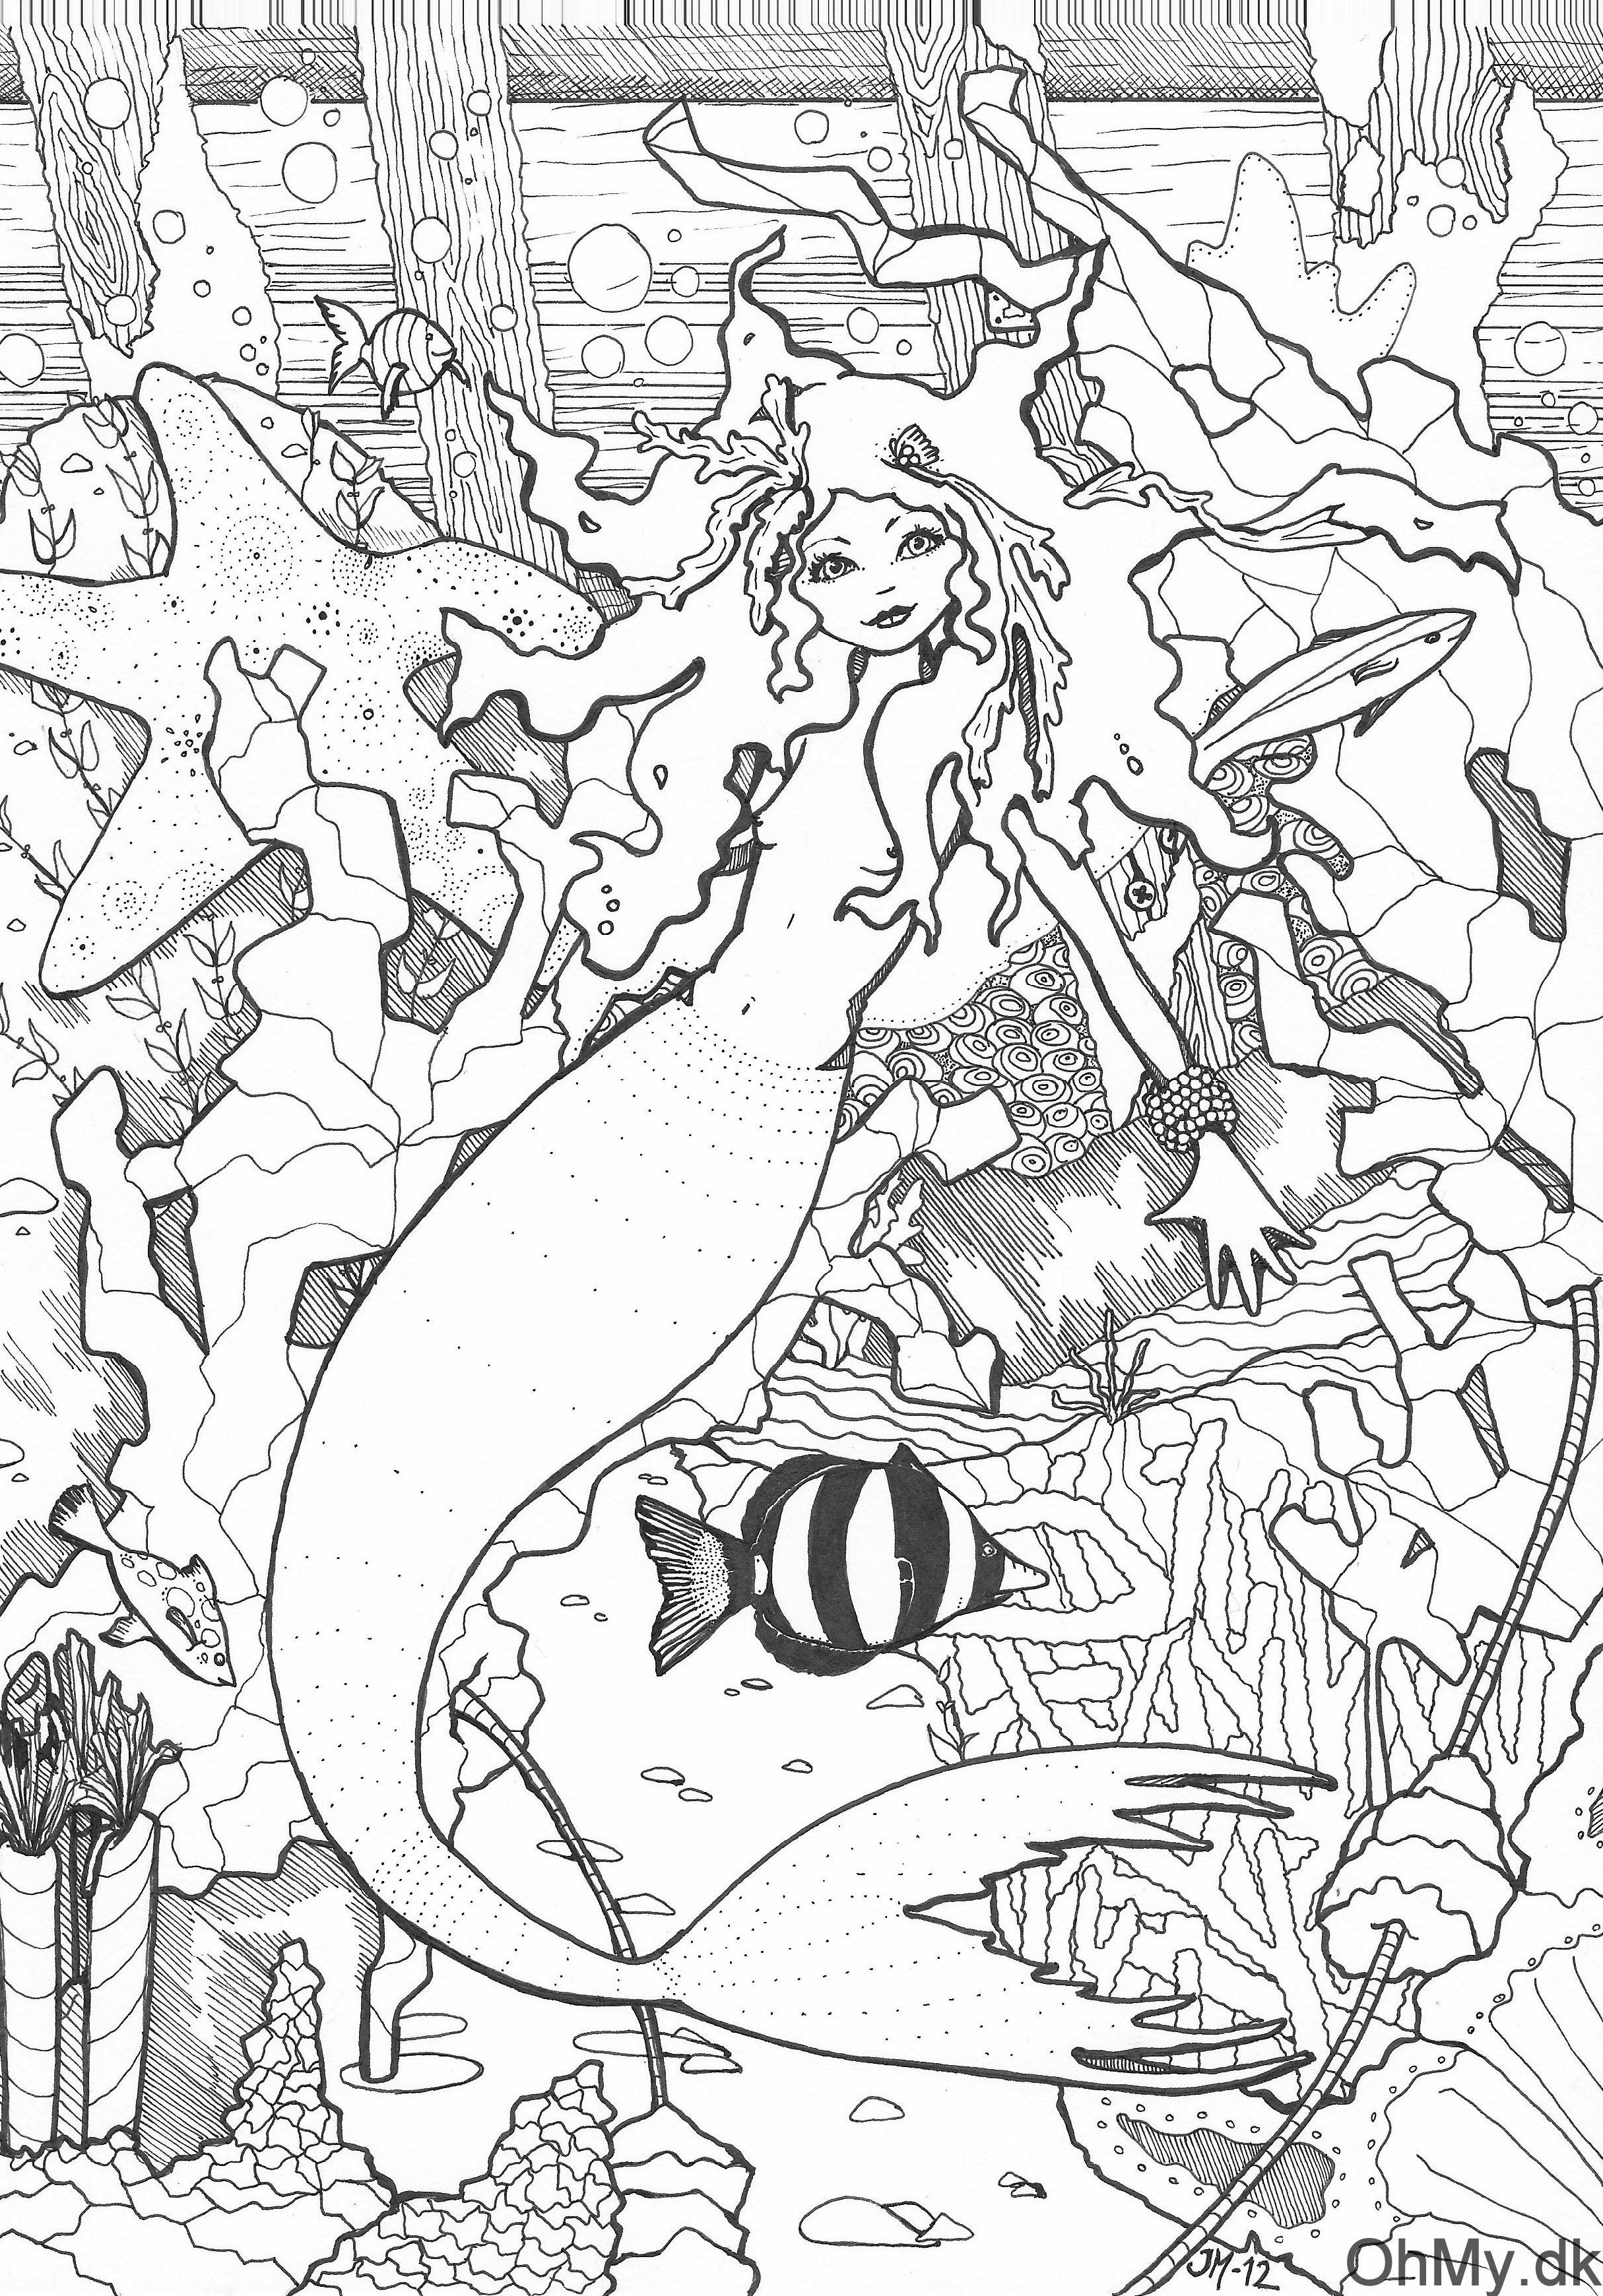 Pin on Coloring pages ideas | 3480x2429